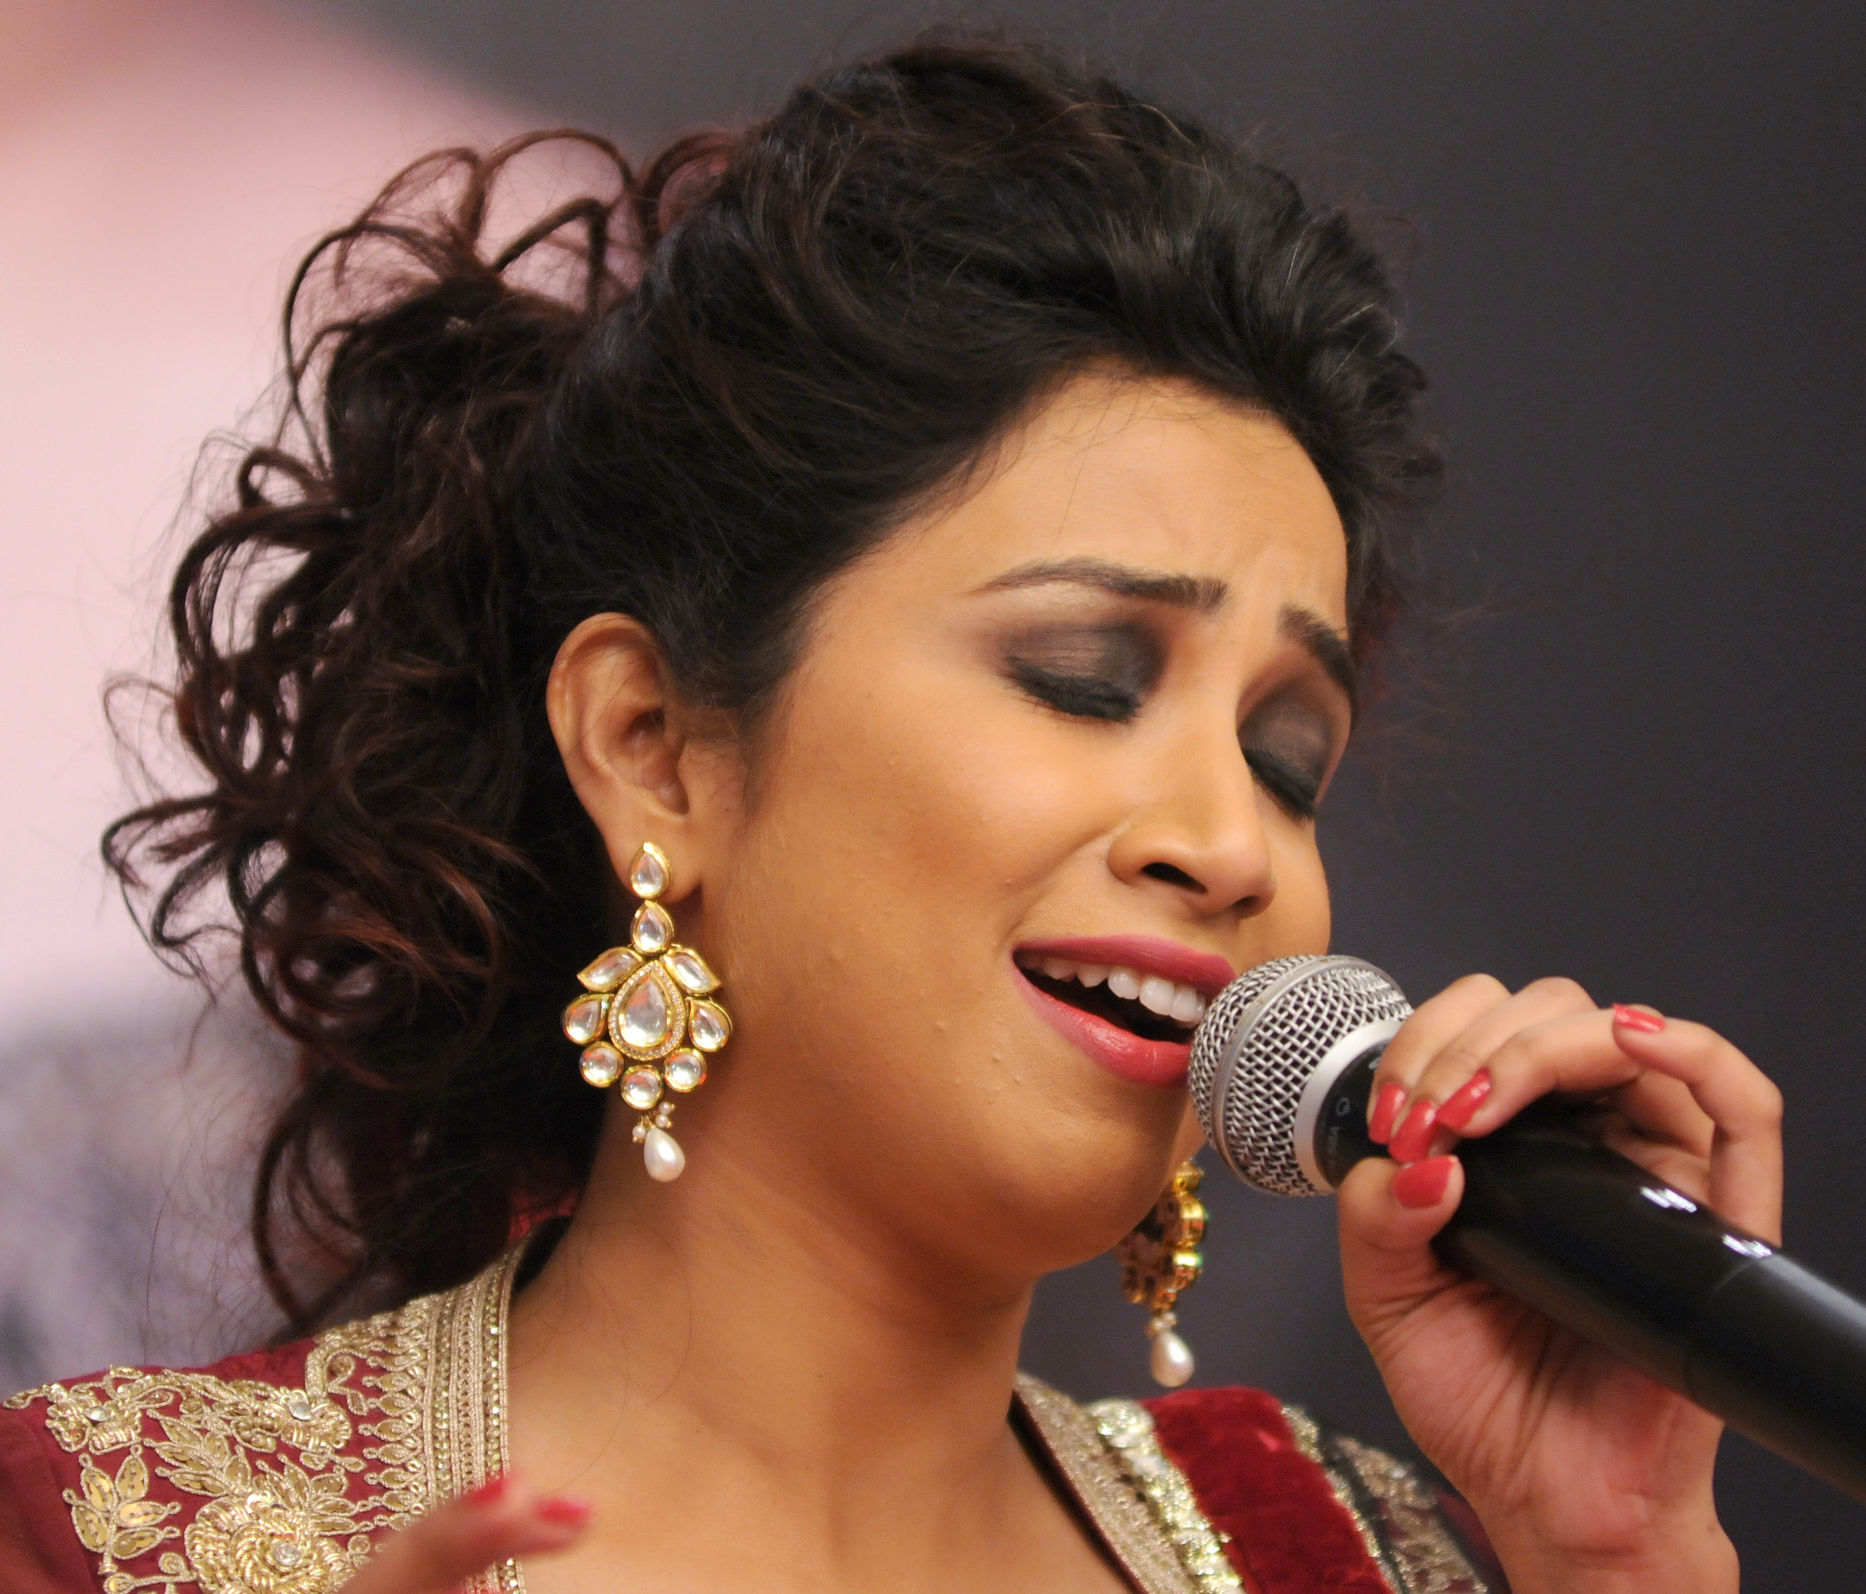 shreya ghoshal in kudan earrings - shreya-ghoshal-in-kudan-earrings